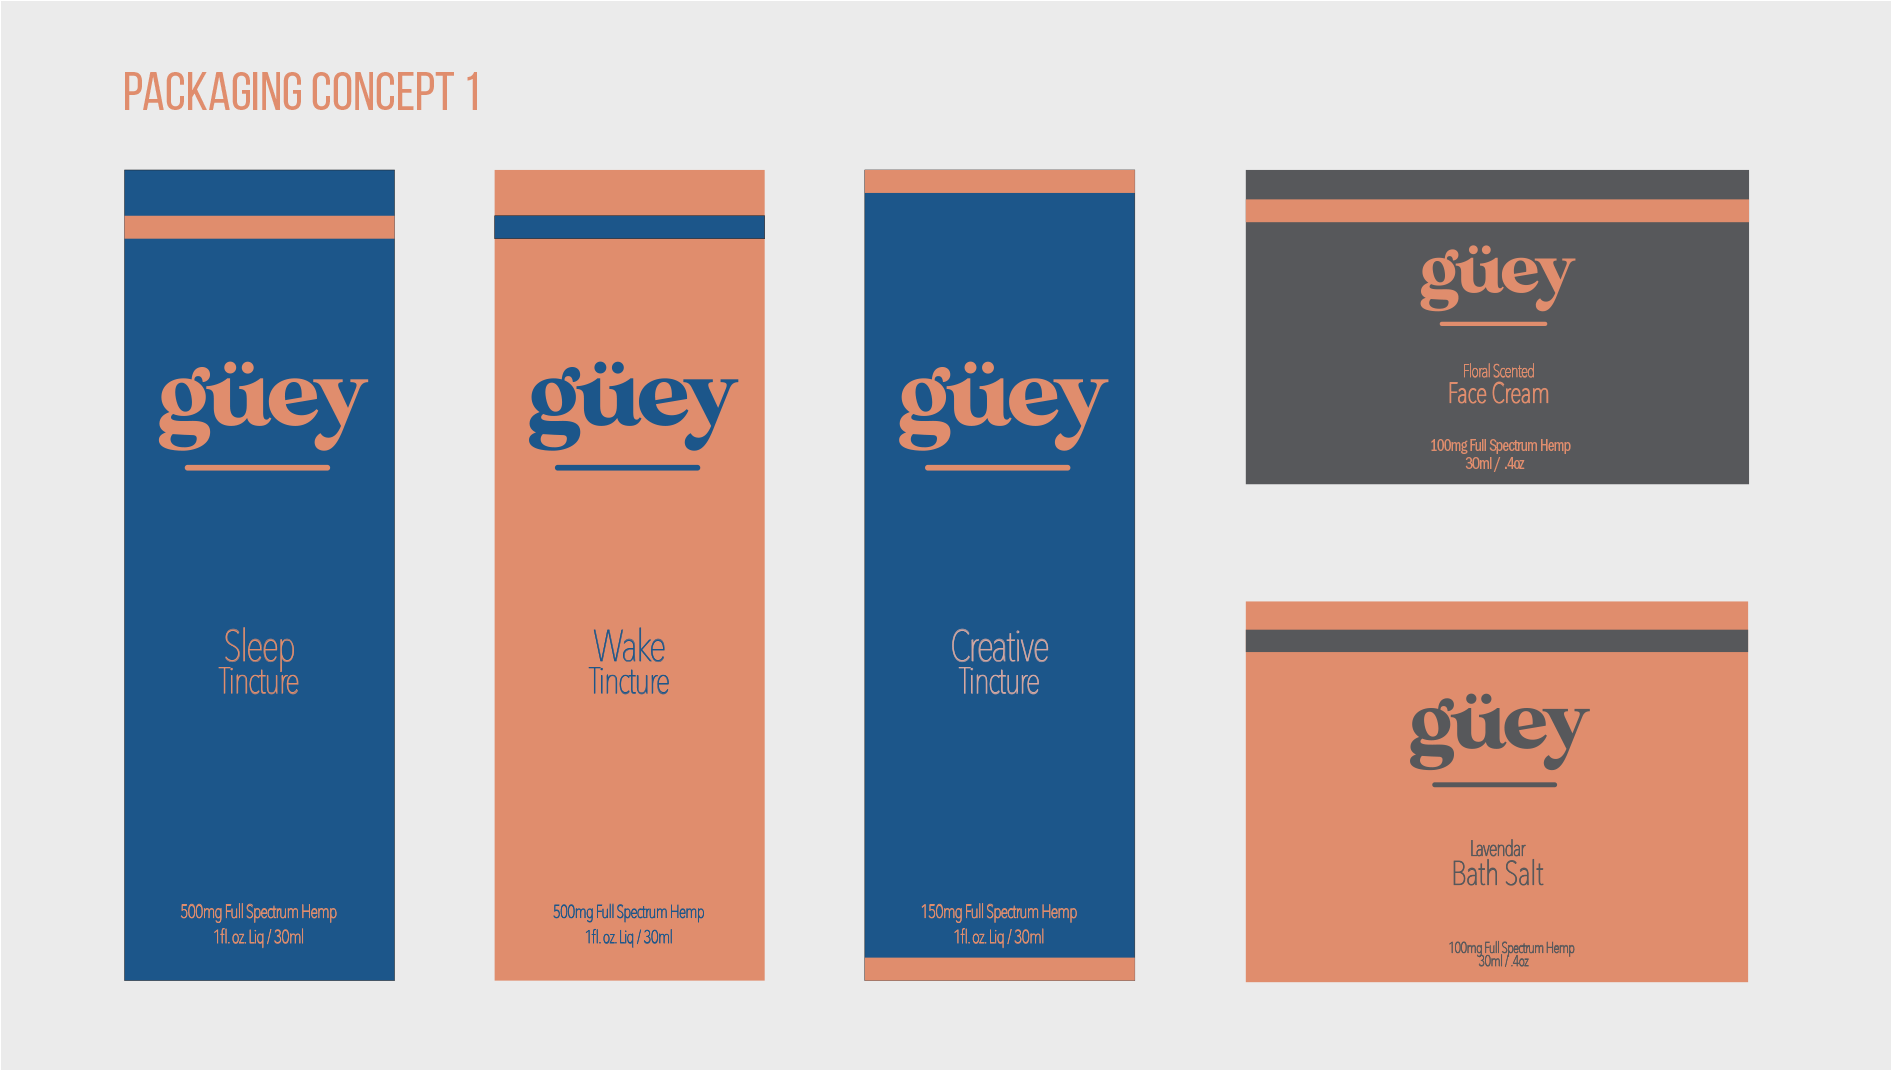 Guey Packaging concepts